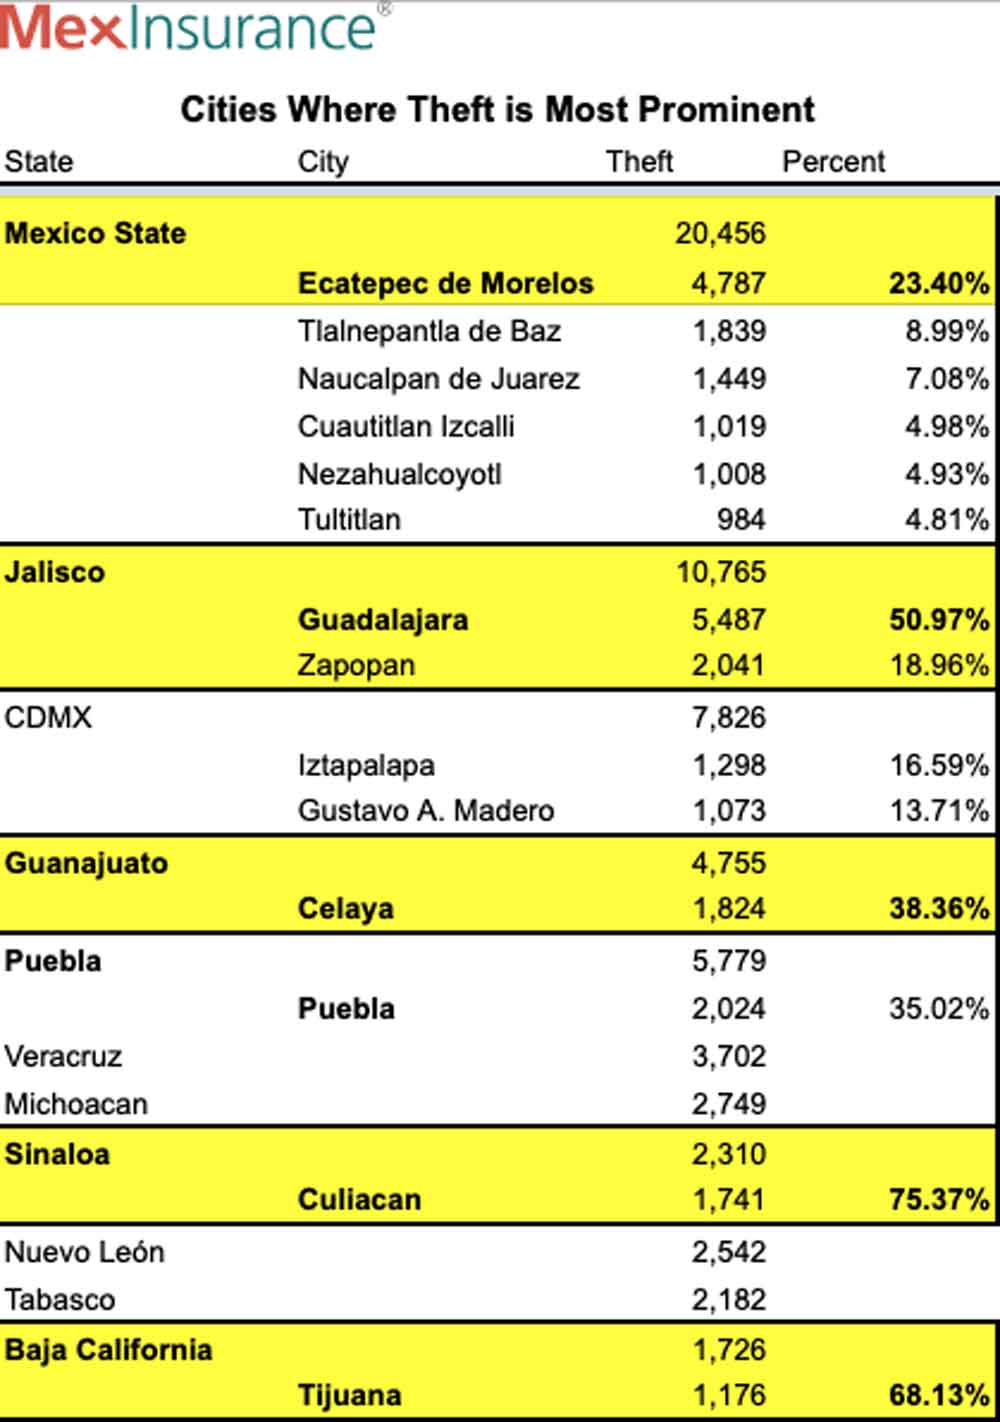 Cities in Mexico with Auto Theft 2020